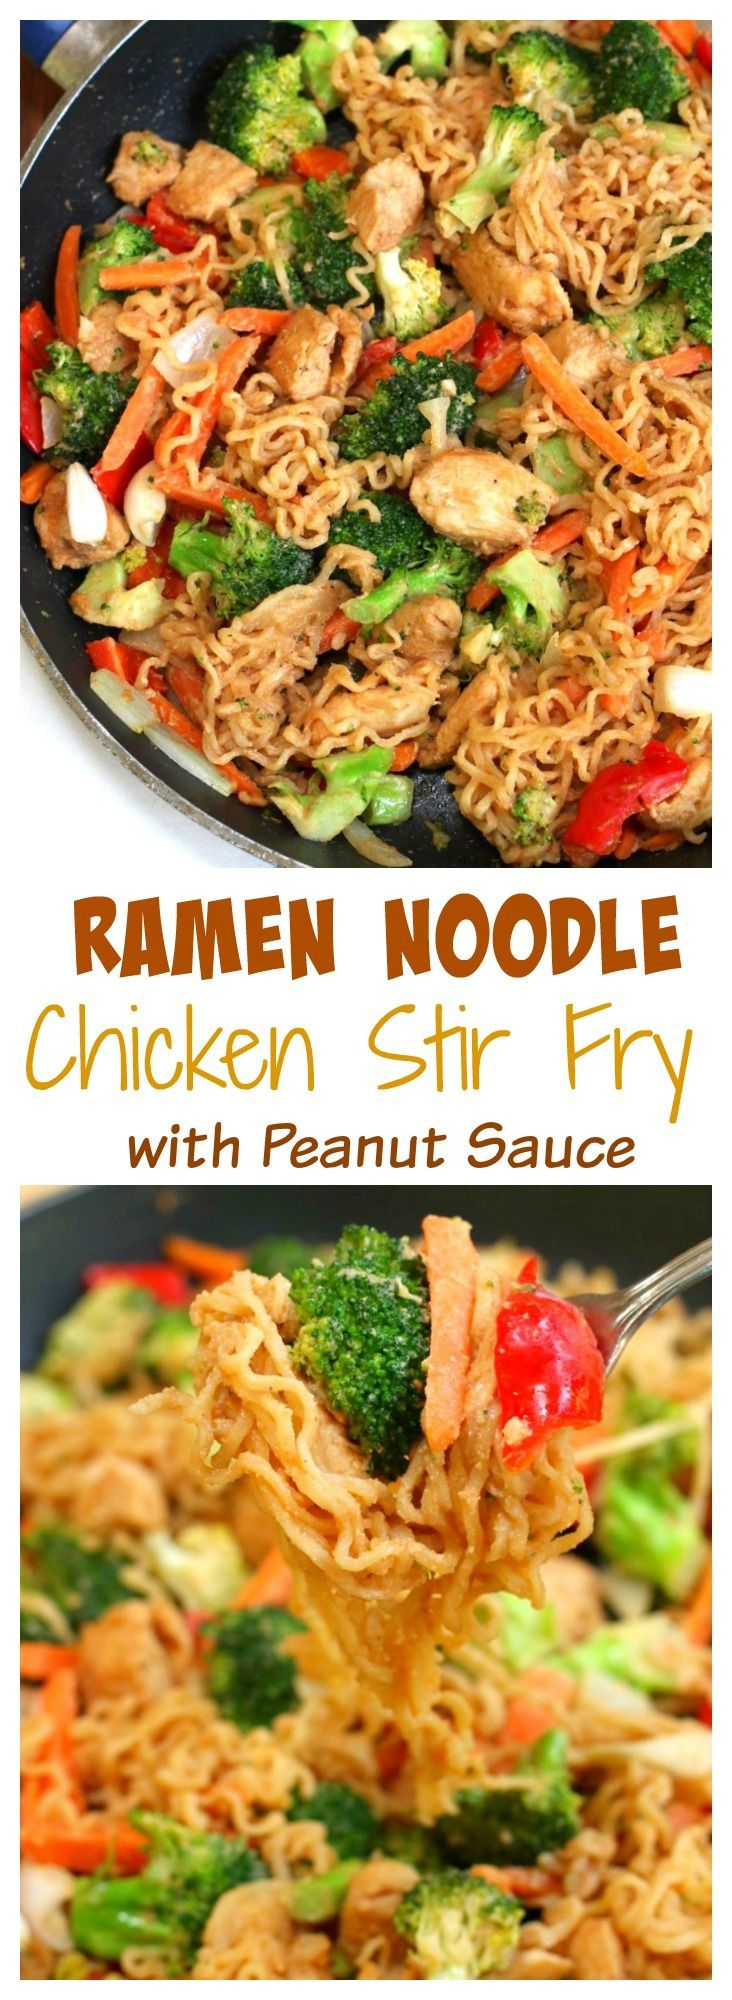 Ramen Noodle Chicken Stir Fry with Peanut Sauce... Sounds interesting!